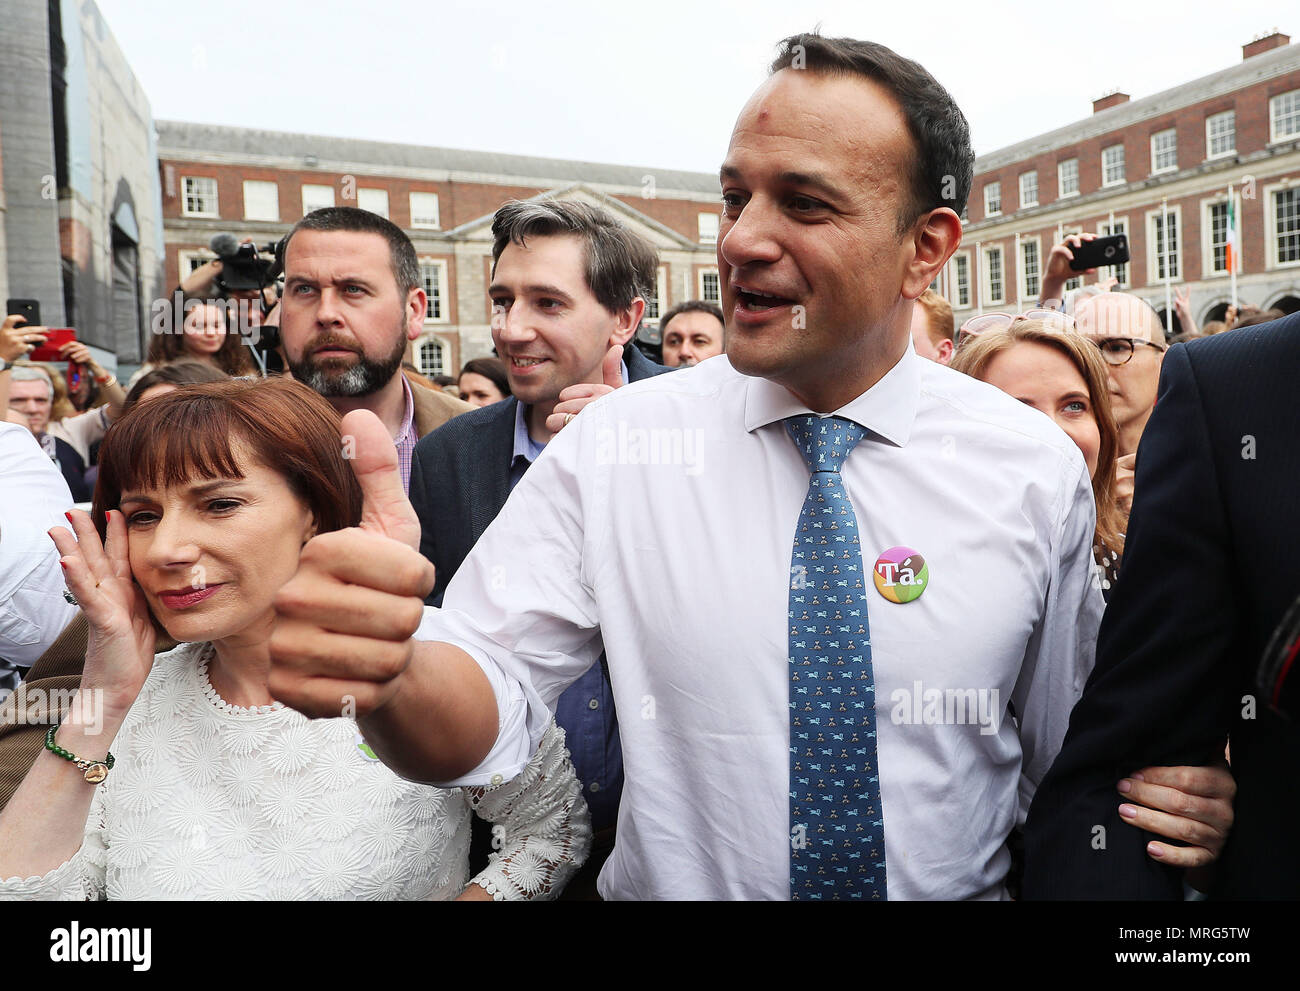 An Taoiseach Leo Varadkar (centre), Minister for Health Simon Harris (second left) and Minister for Culture Josepha Madigan arrive at Dublin Castle for the results of the referendum on the 8th Amendment of the Irish Constitution which prohibits abortions unless a mother's life is in danger. Picture date: Saturday May 26, 2018. See PA story IRISH Abortion. Photo credit should read: Brian Lawless/PA Wire - Stock Image